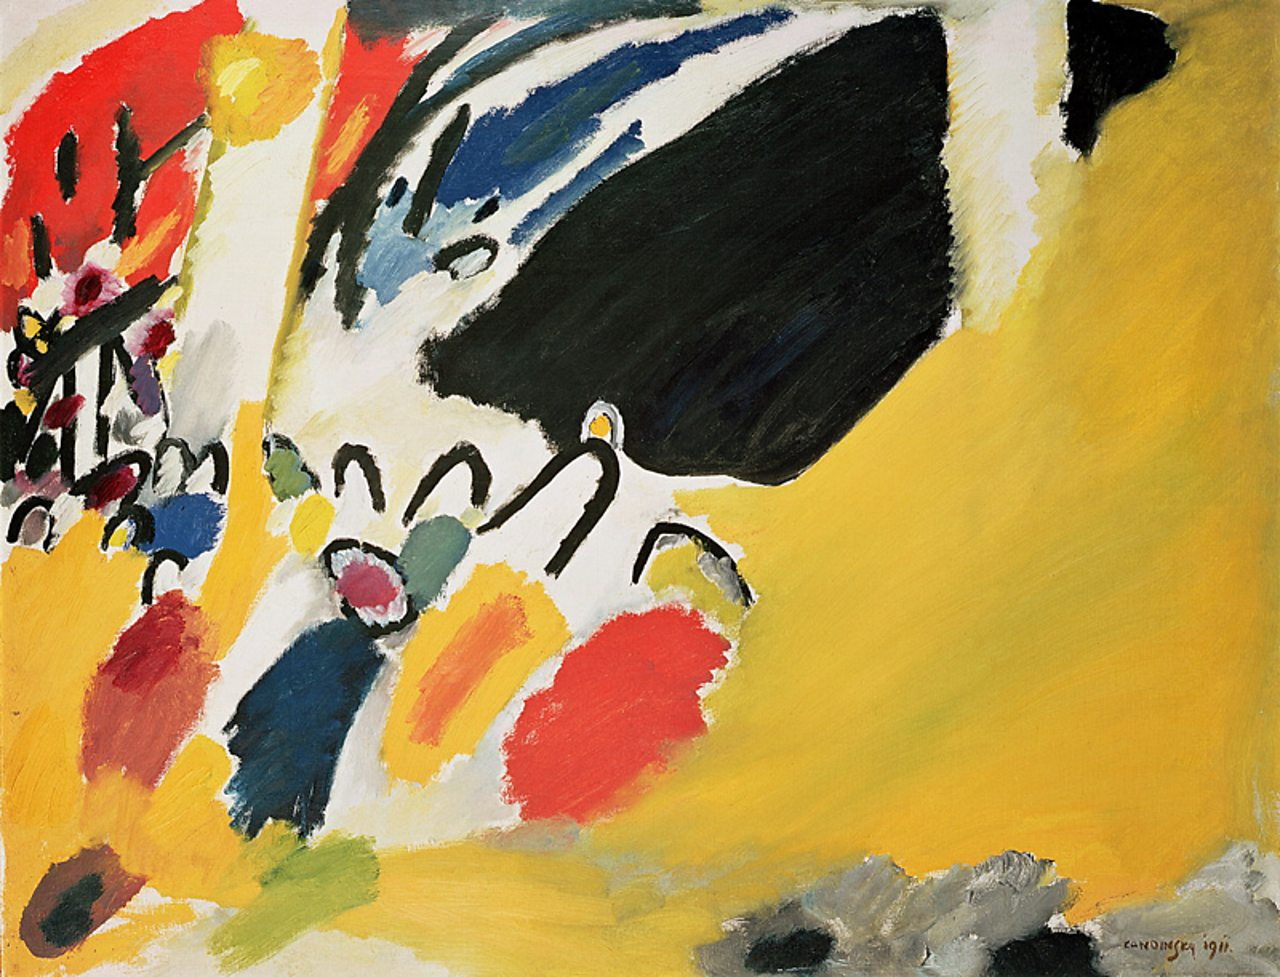 Impression no. 3 (Concert) 1911 by Wassily Kandinsky, a colourful abstract painting.